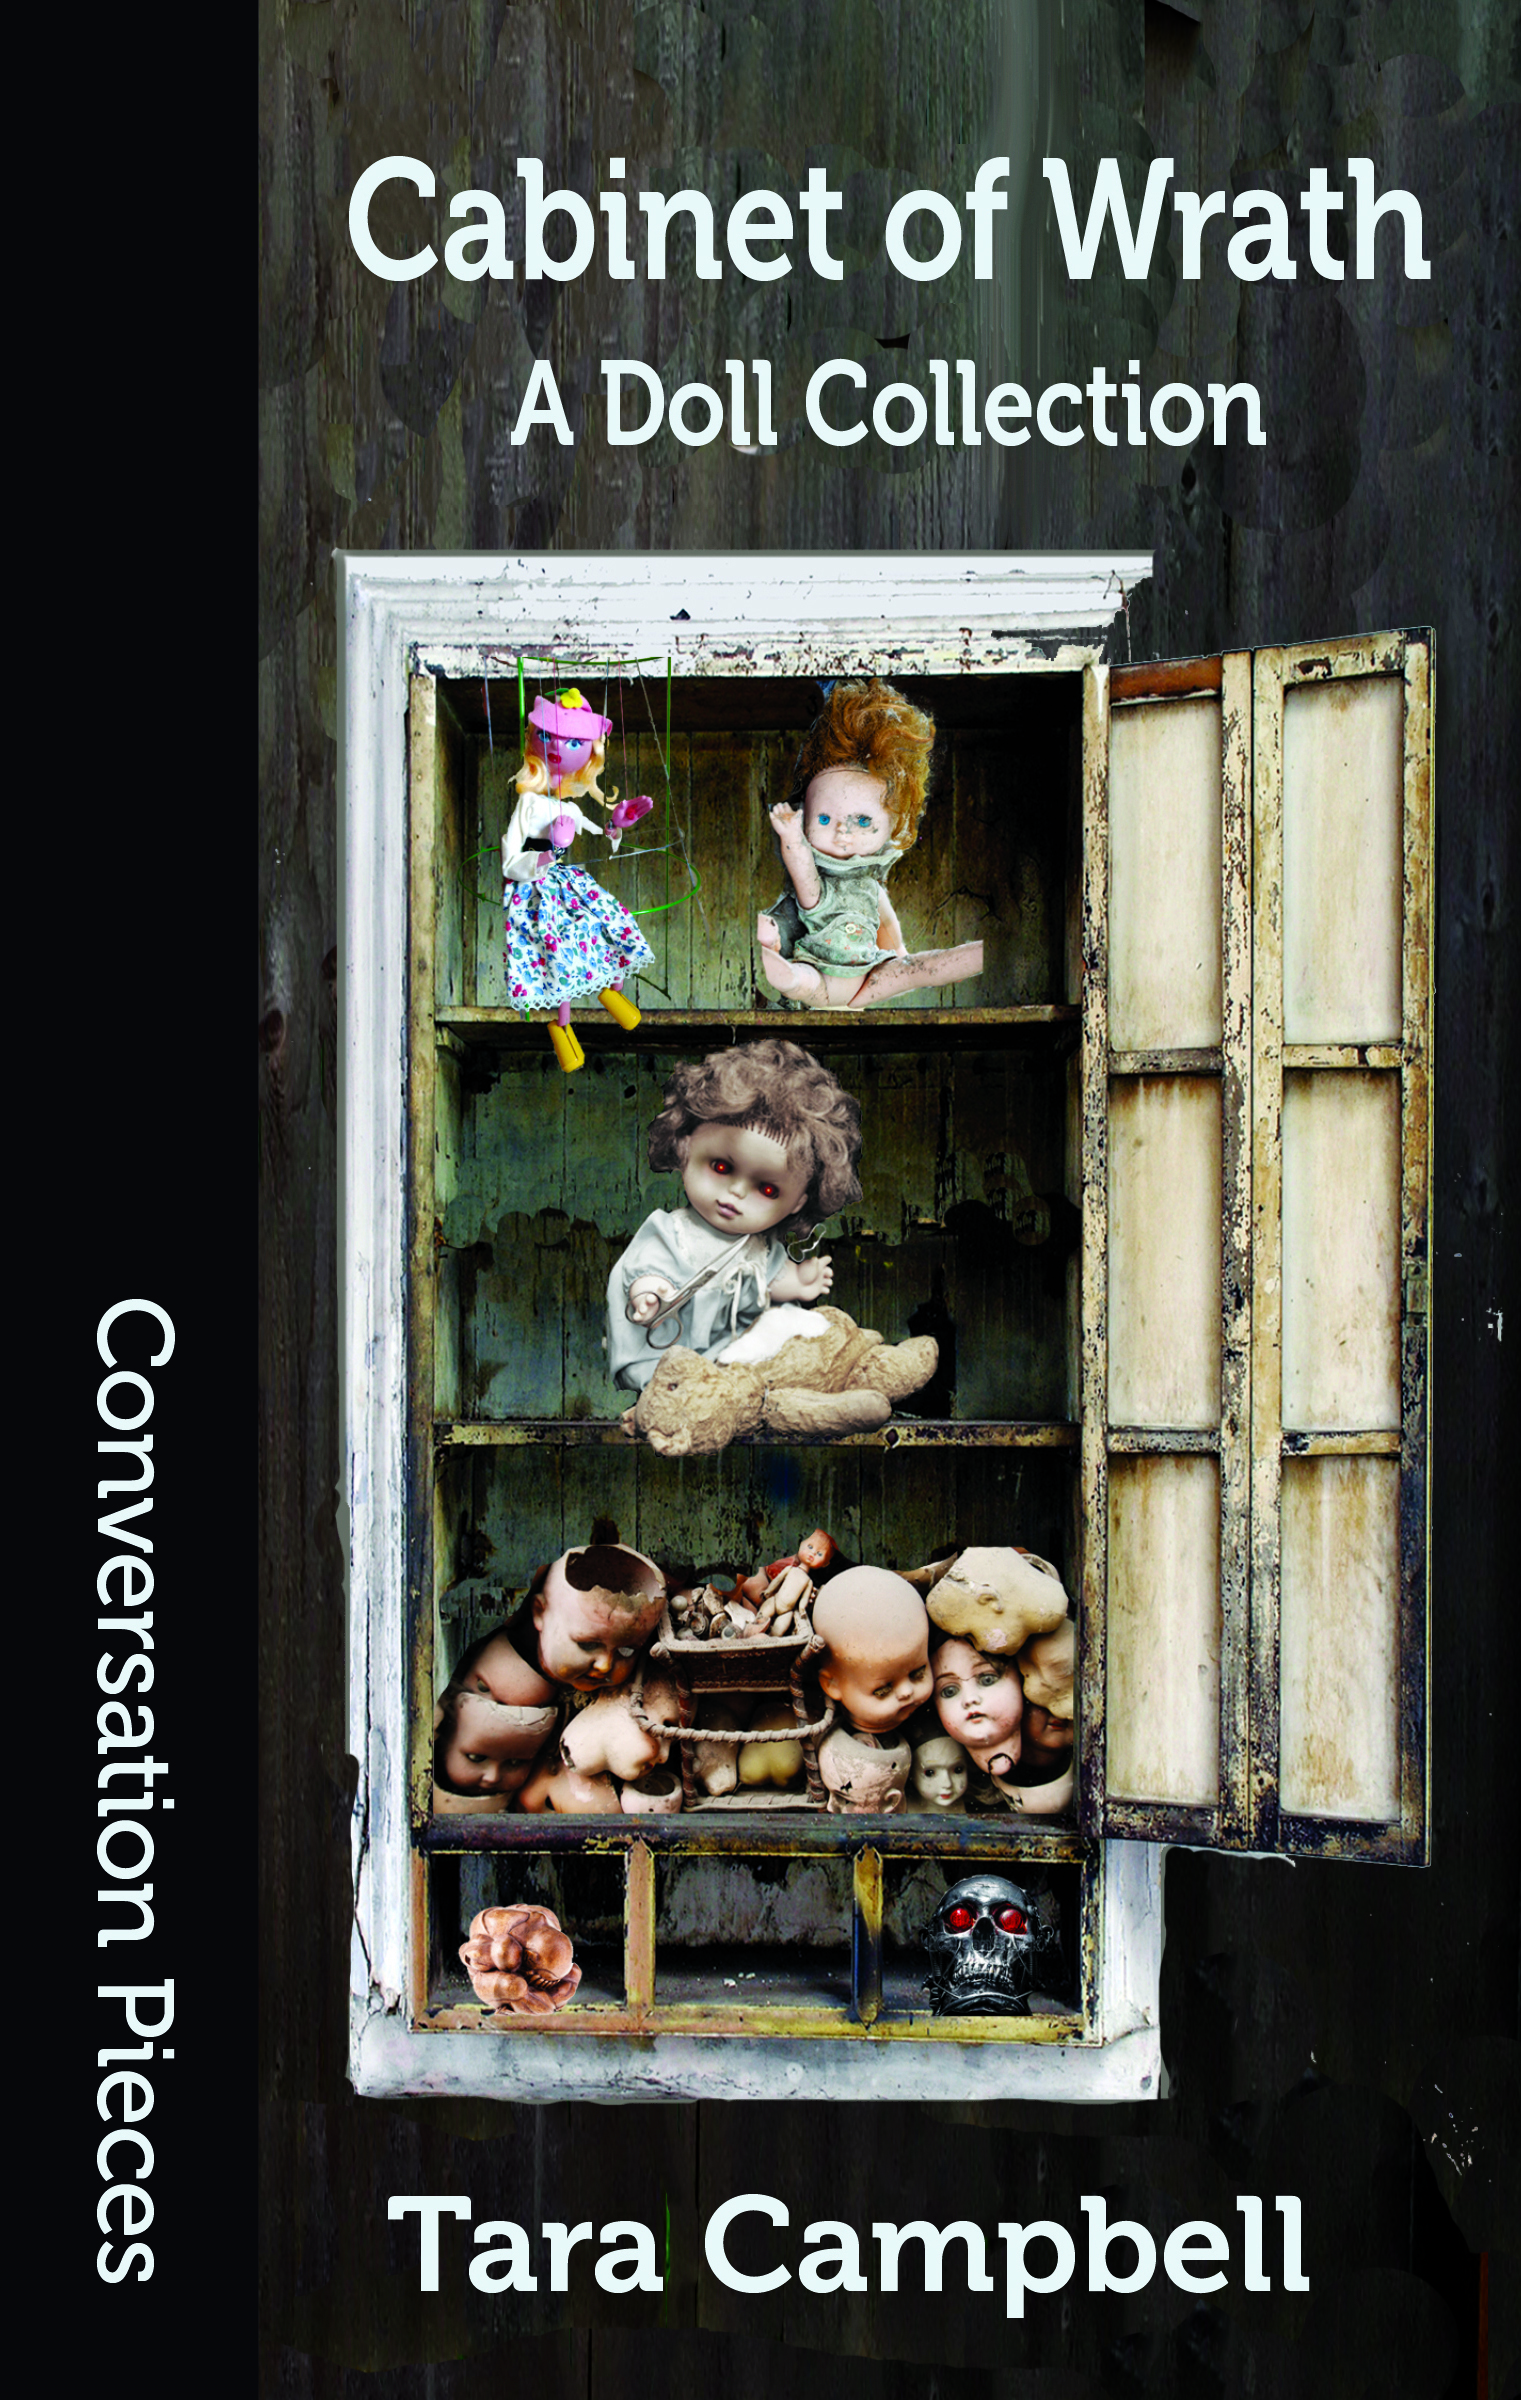 Cover image of Cabinet of Wrath: A Doll Collection by Tara Campbell, featuring the Conversation Pieces series design, with a black band on the left runing down the cover and featuring a collage of an open wooden cabinet in which different dolls and parts of dolls in varying degrees of decay or dismemberment are placed on each shelf.